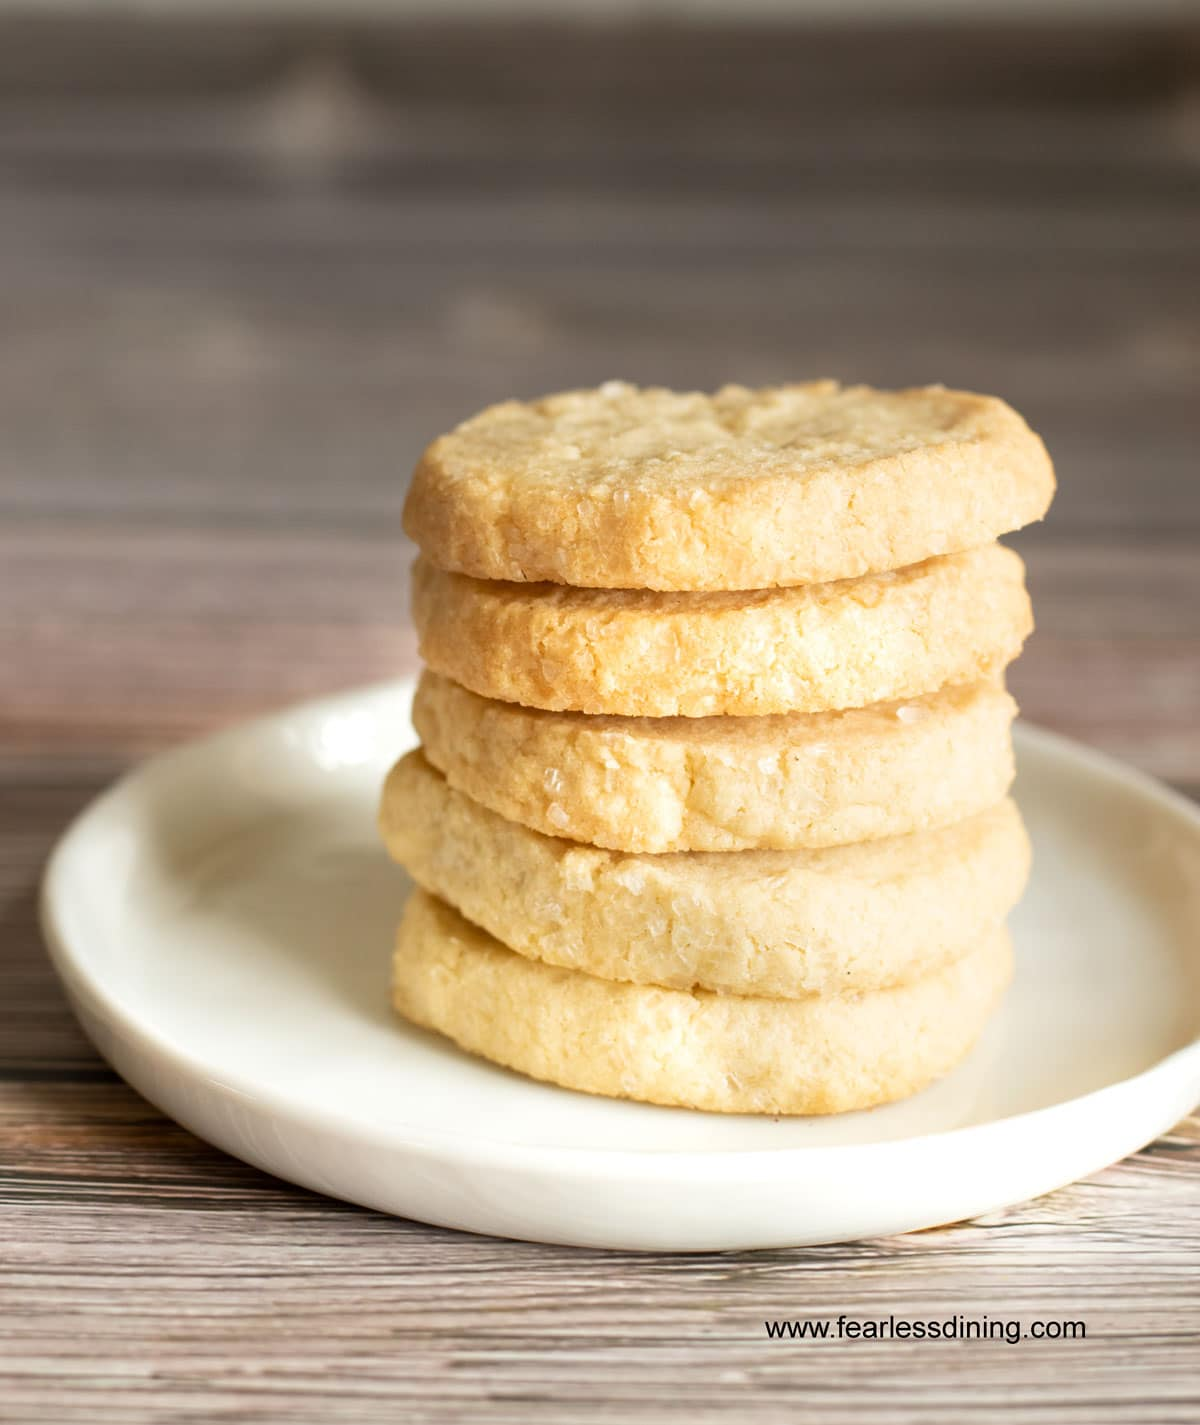 a stack of 5 gluten free sable cookies on a white plate